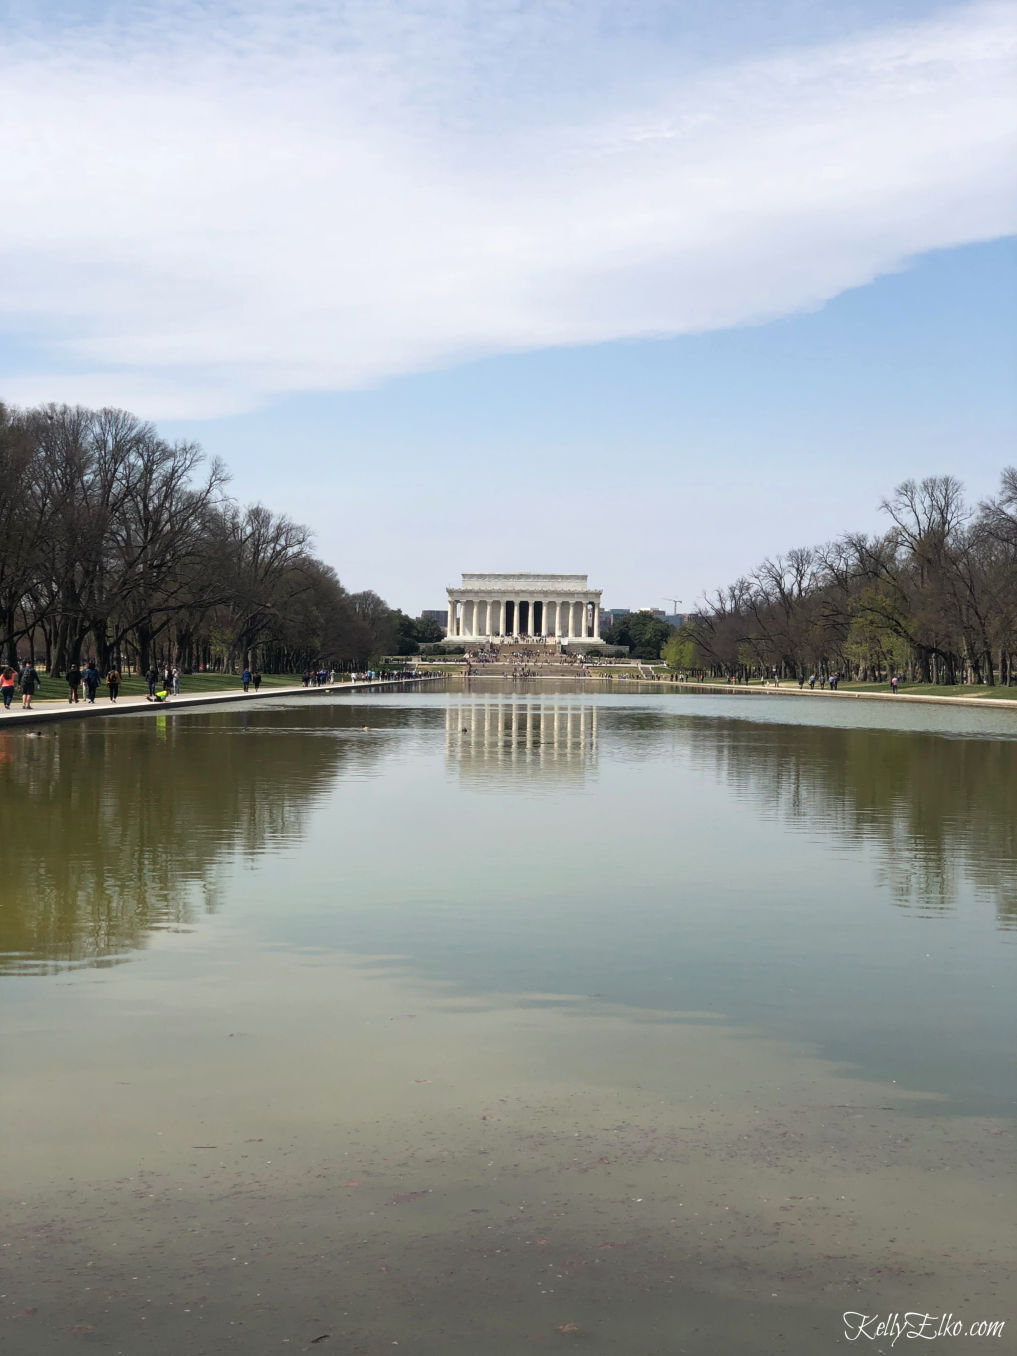 Weekend in Washington DC - love this view of the Lincoln Memorial across the reflecting pool kellyelko.com #travel #travelblogger #washingtondc #dc #vacation #familytravel #getaway #escape #reflectingpool #lincolnmemorial